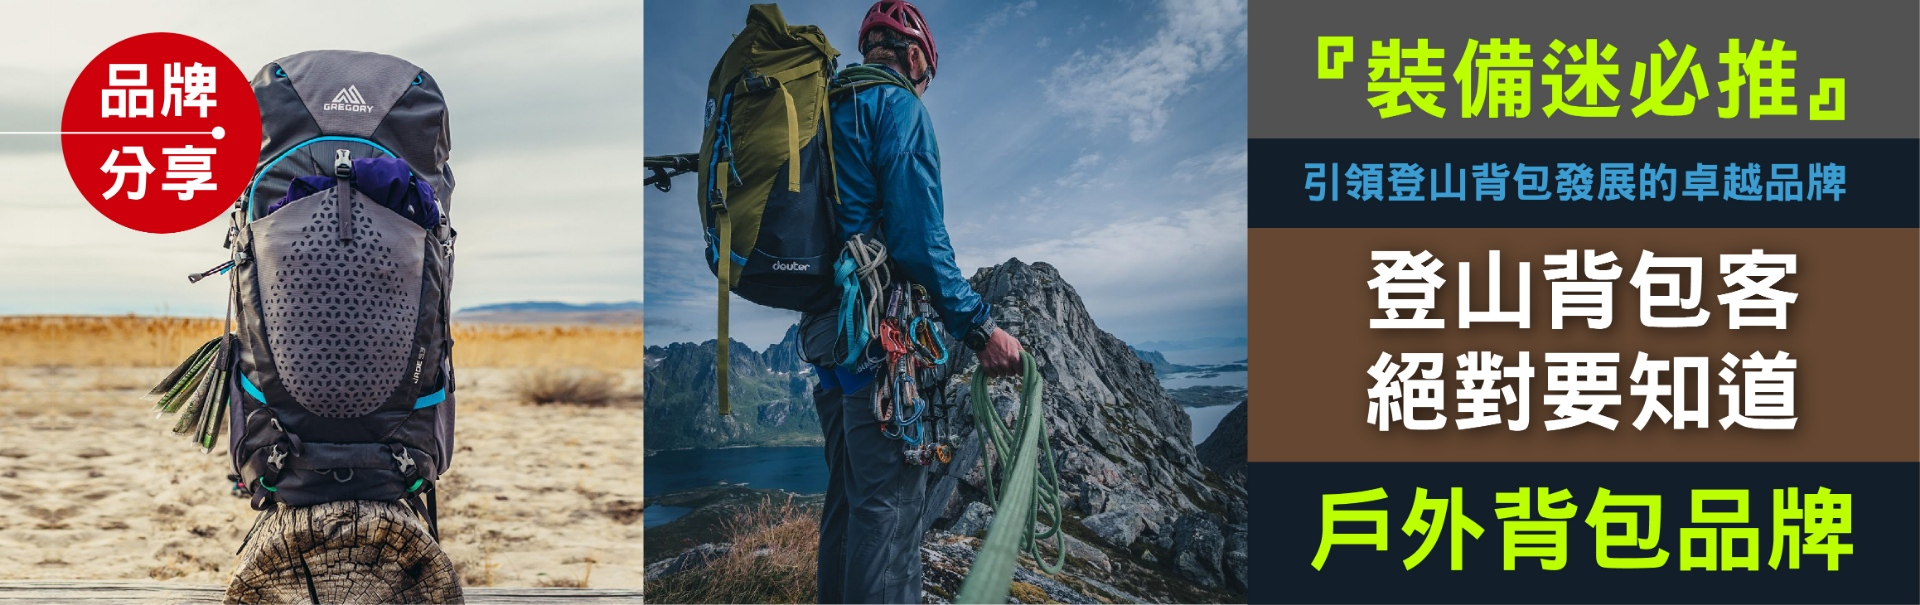 banner-outdoor-brands-recommend-backpack-1-1-1